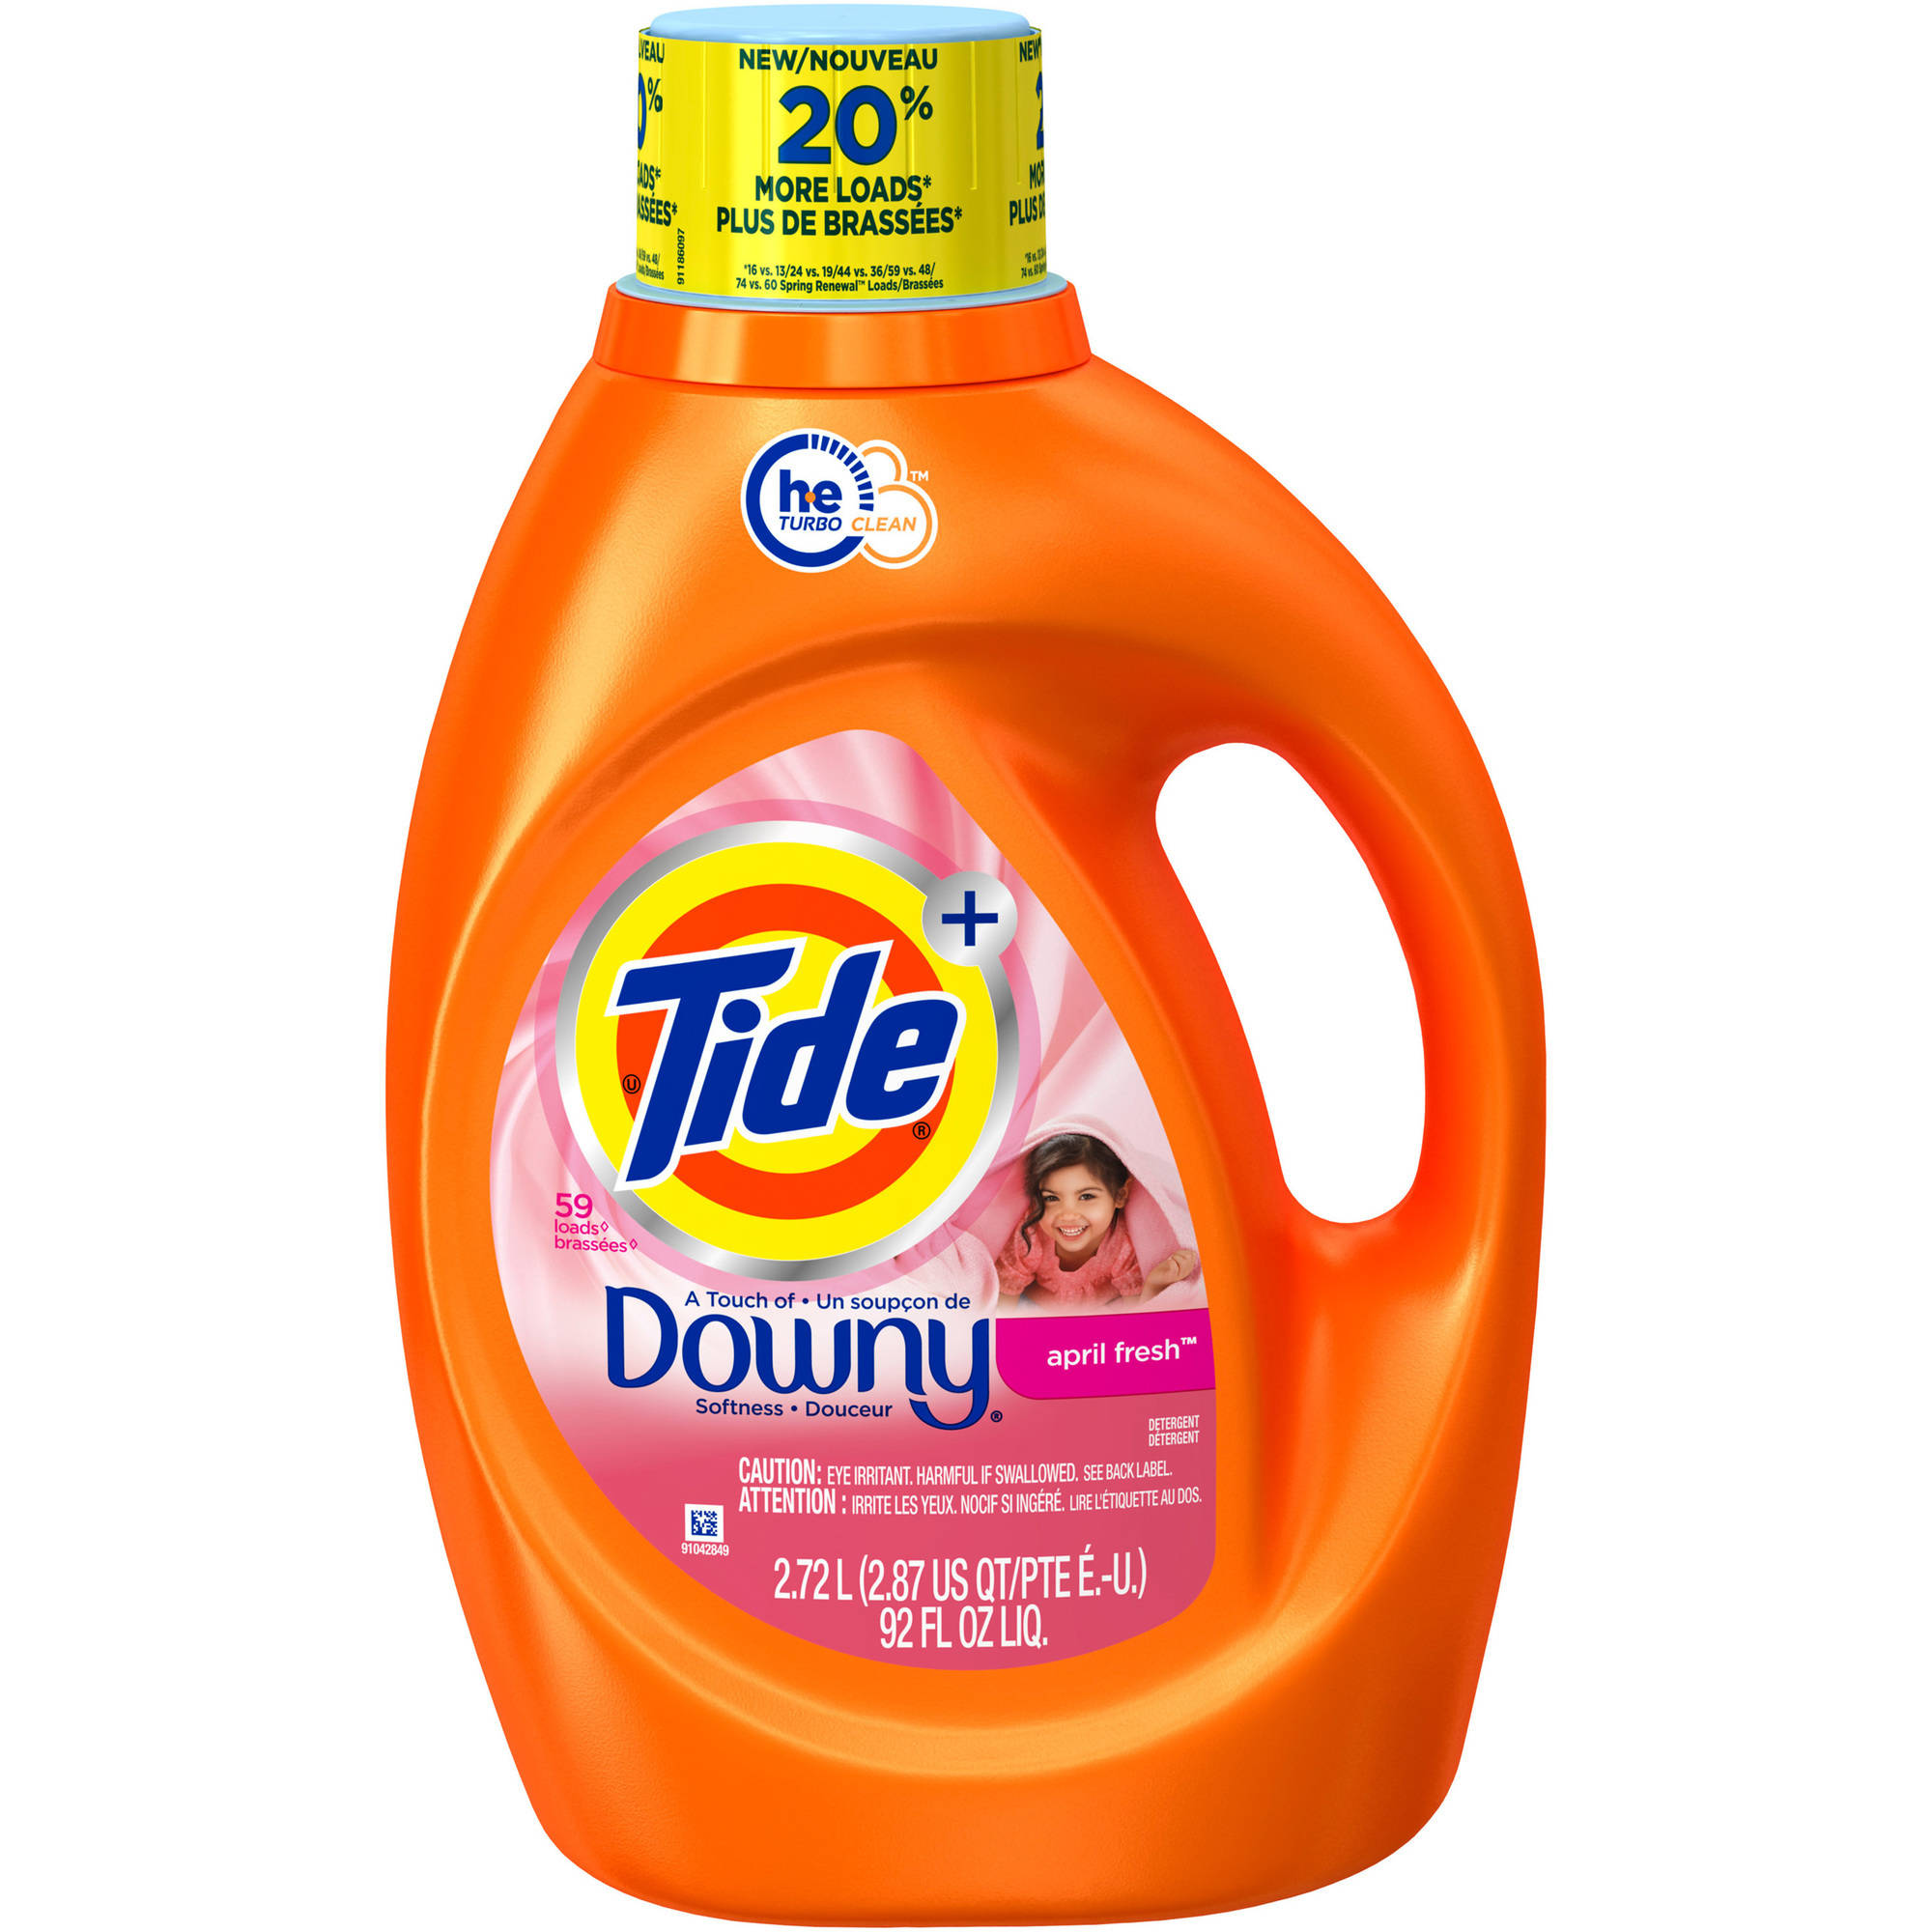 Tide Plus Downy April Fresh Scent HE Turbo Clean Liquid Laundry Detergent, 48 Loads, 92 oz